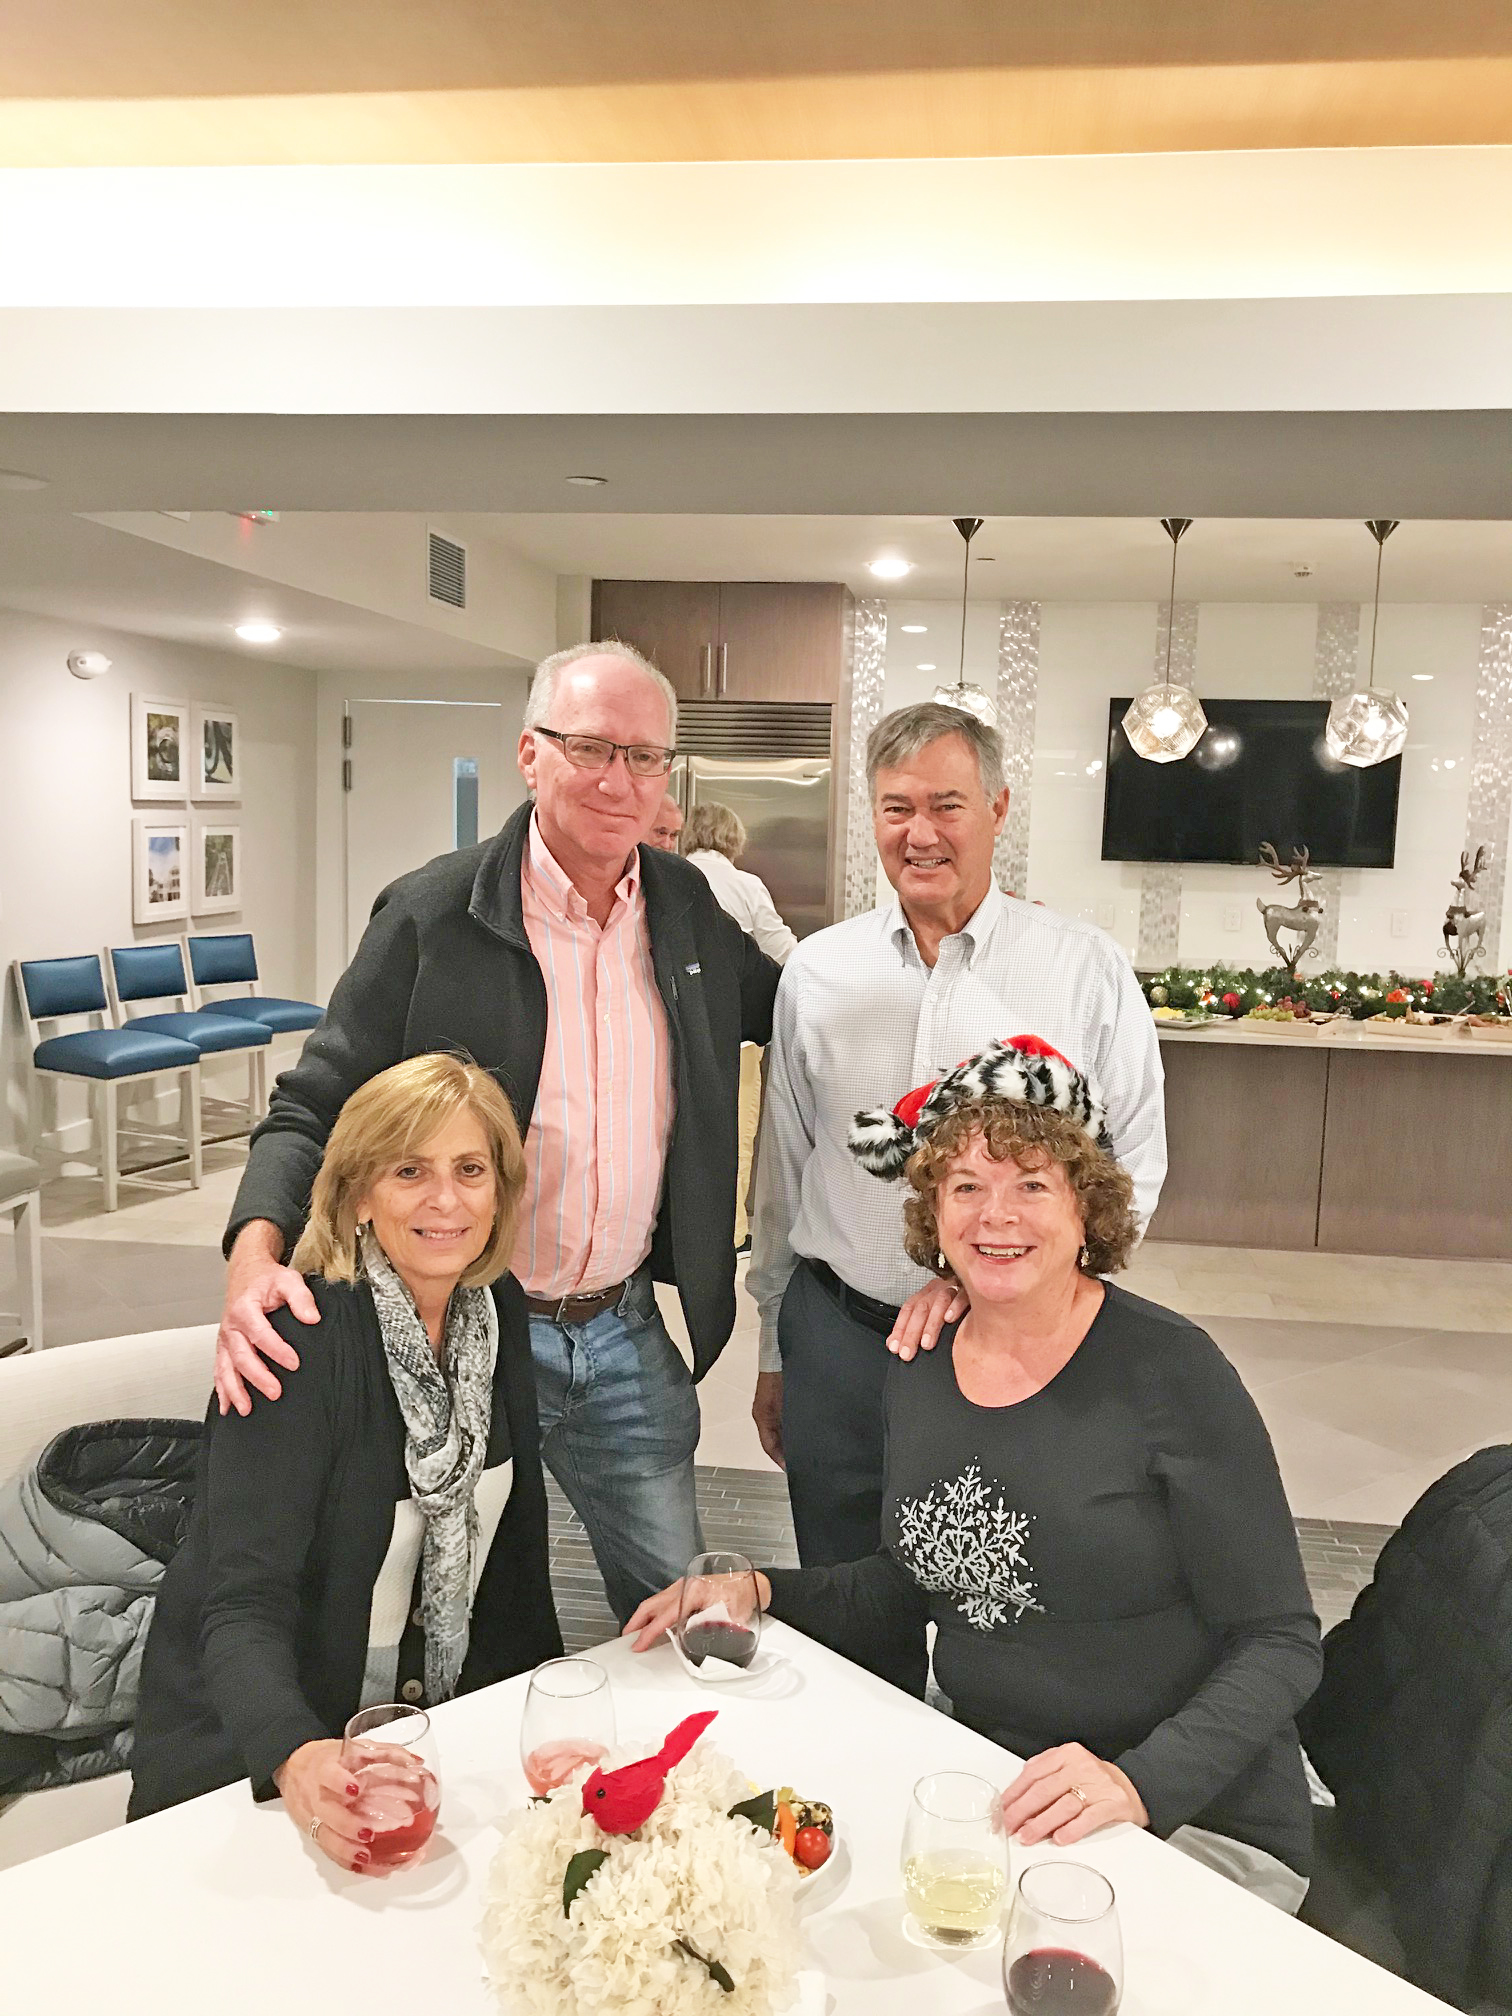 Daniel Island residents celebrate the holidays together. Standing: Jeff Hammer and Bruce Markham. Seated: Irene Hammer and Kathy Markham.